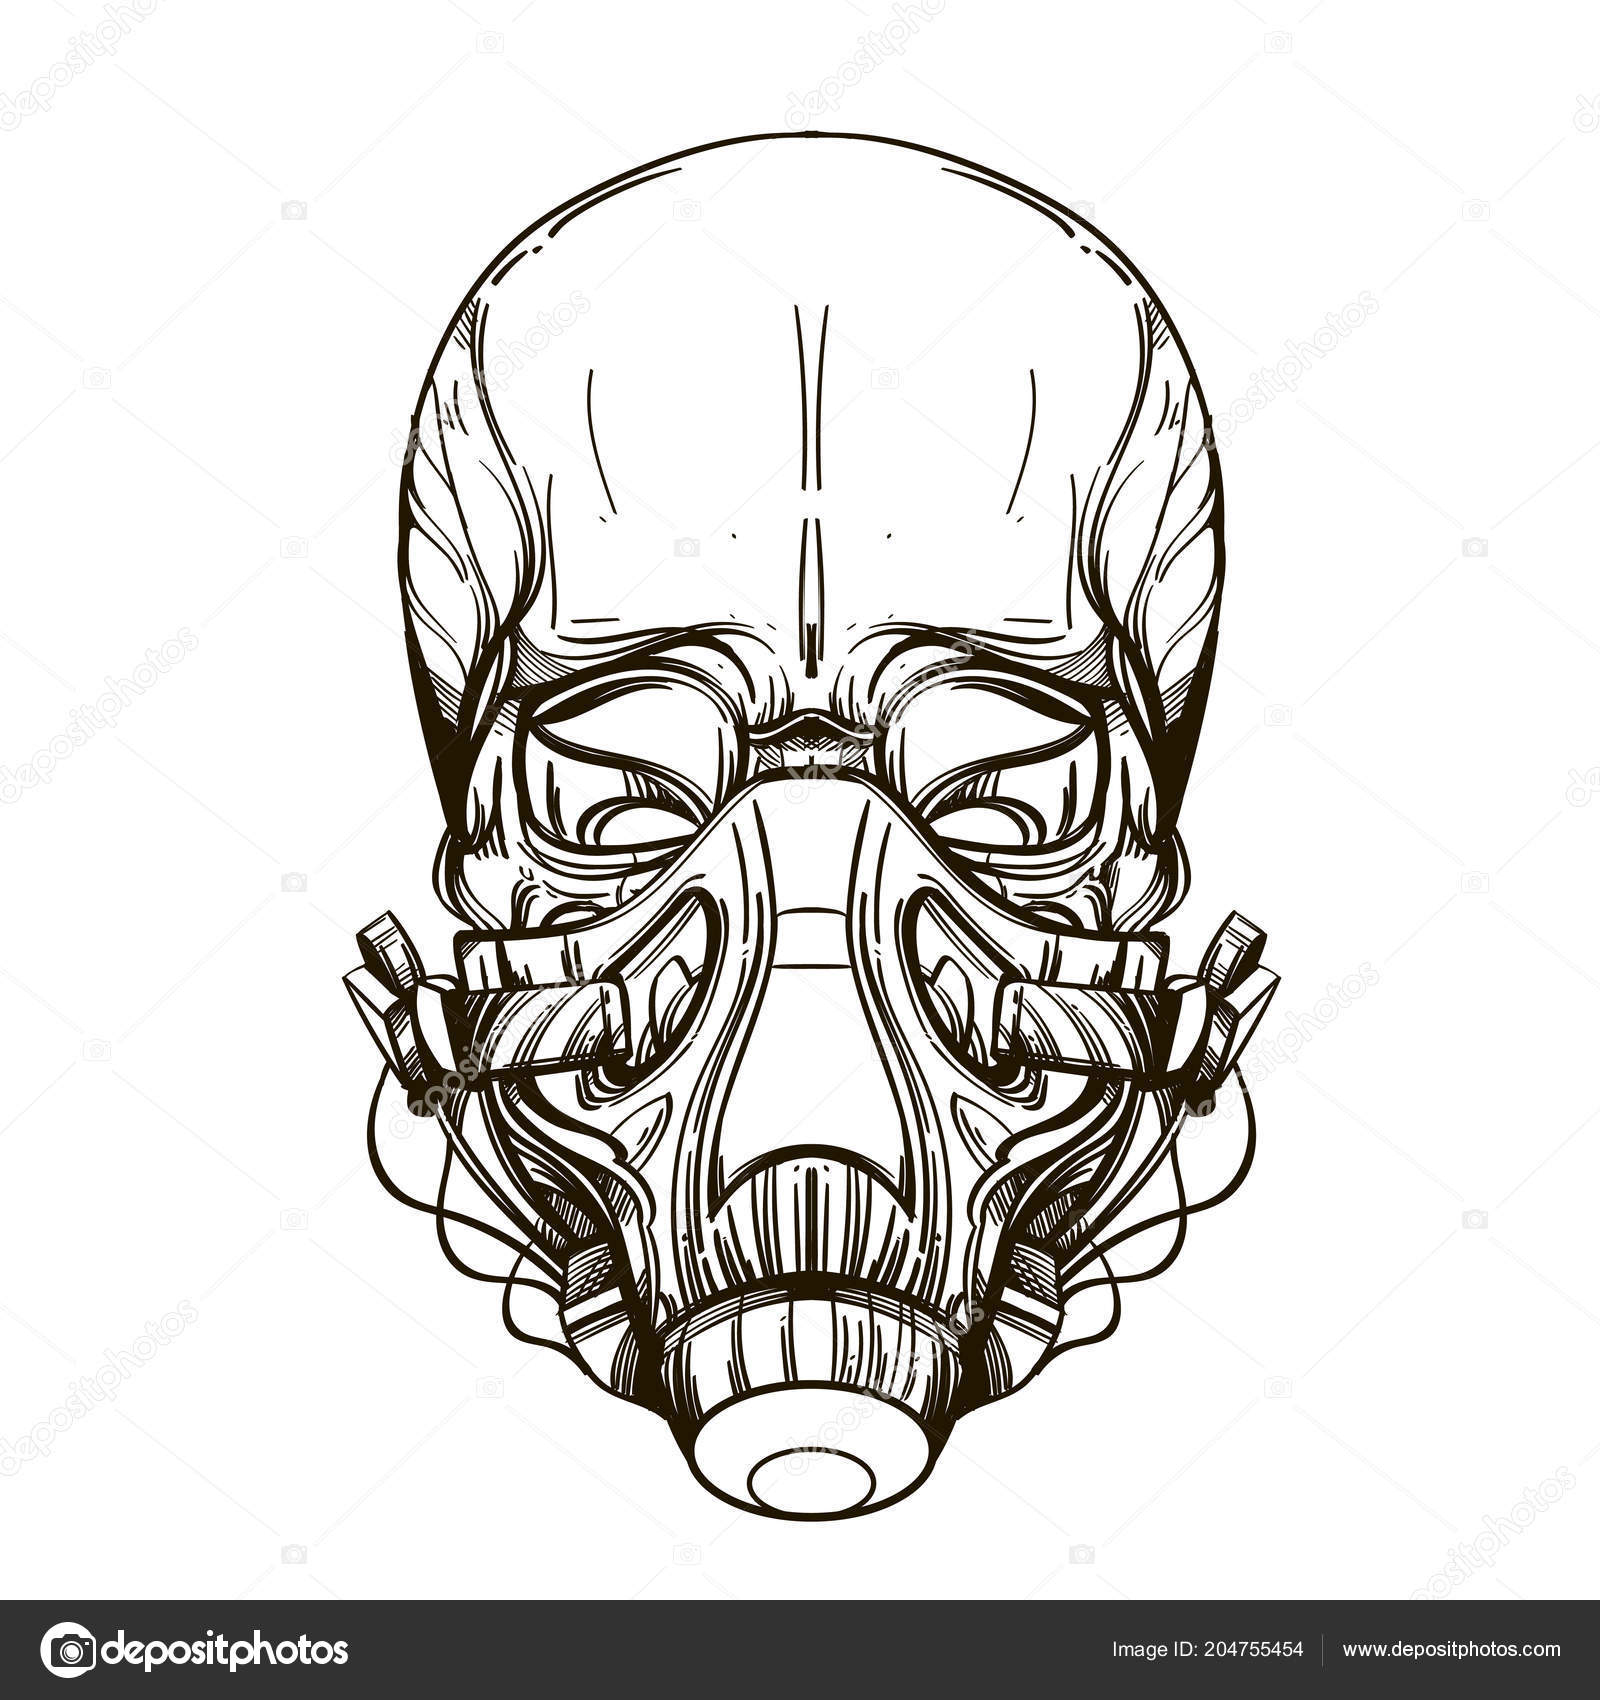 skull contour sketch tattoo stickers printing shirts other items